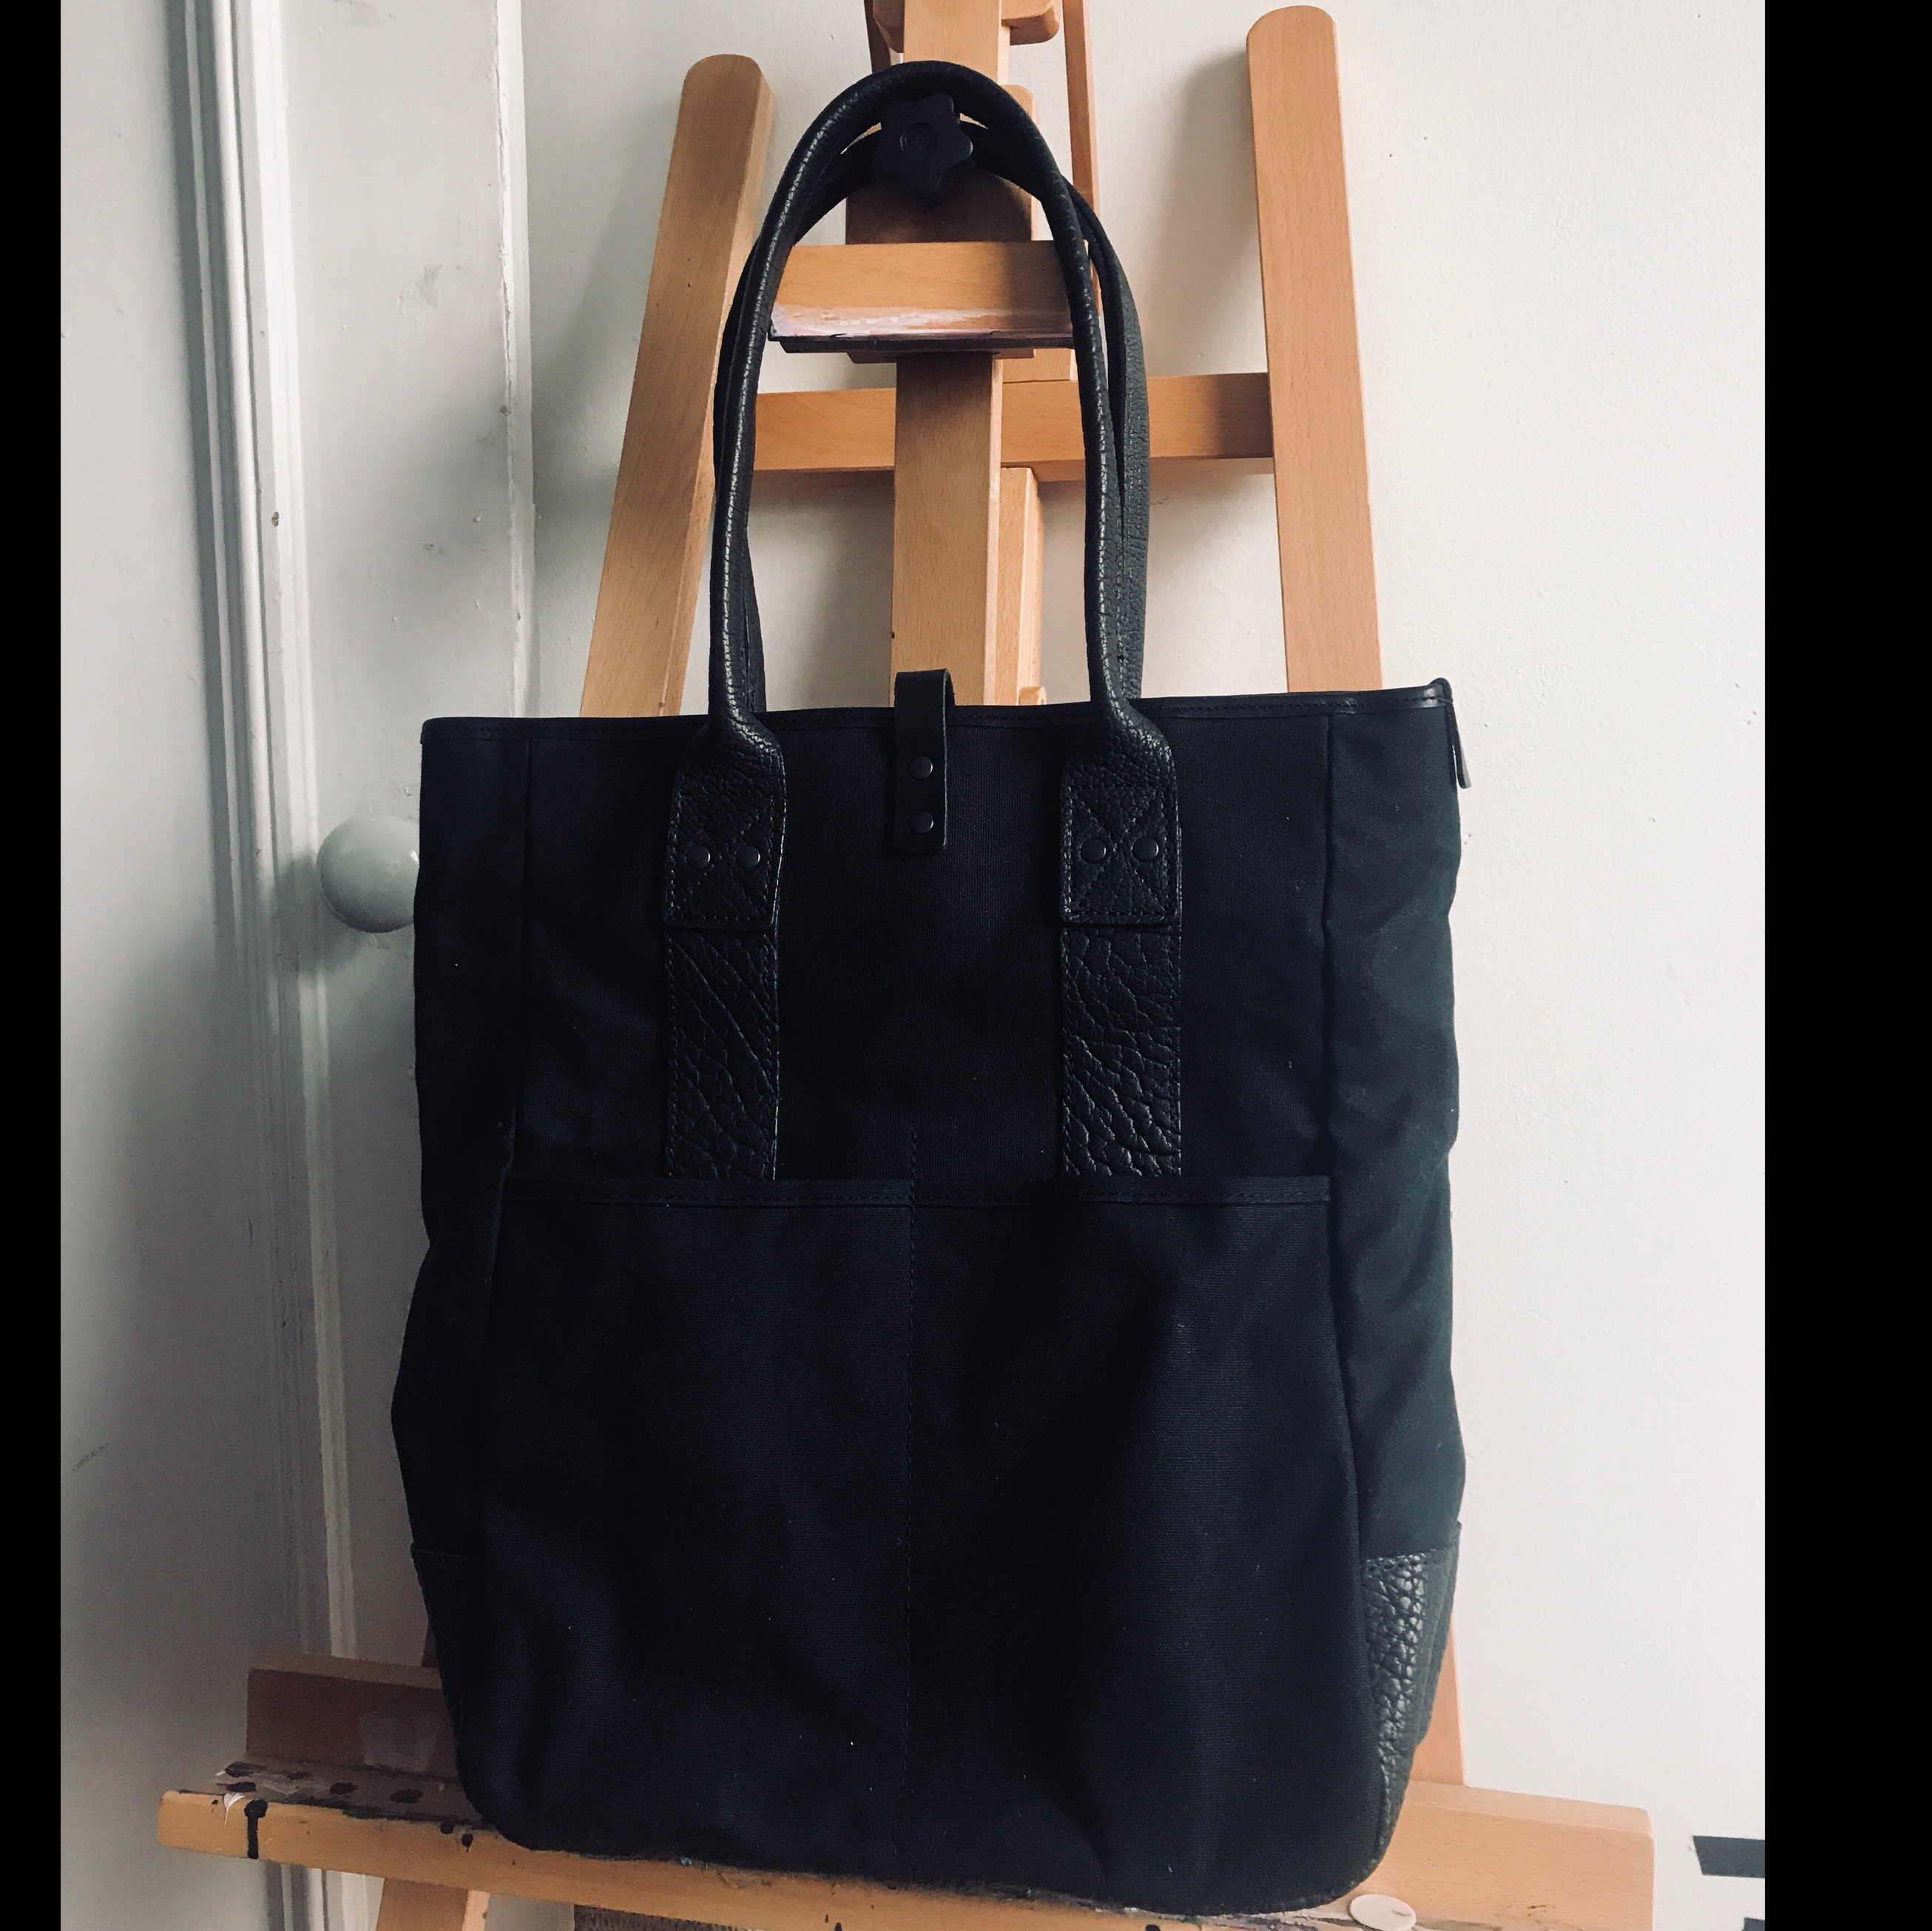 BILLY KIRK x UNCRATE LEATHER TOTE BAG Org     - Depop